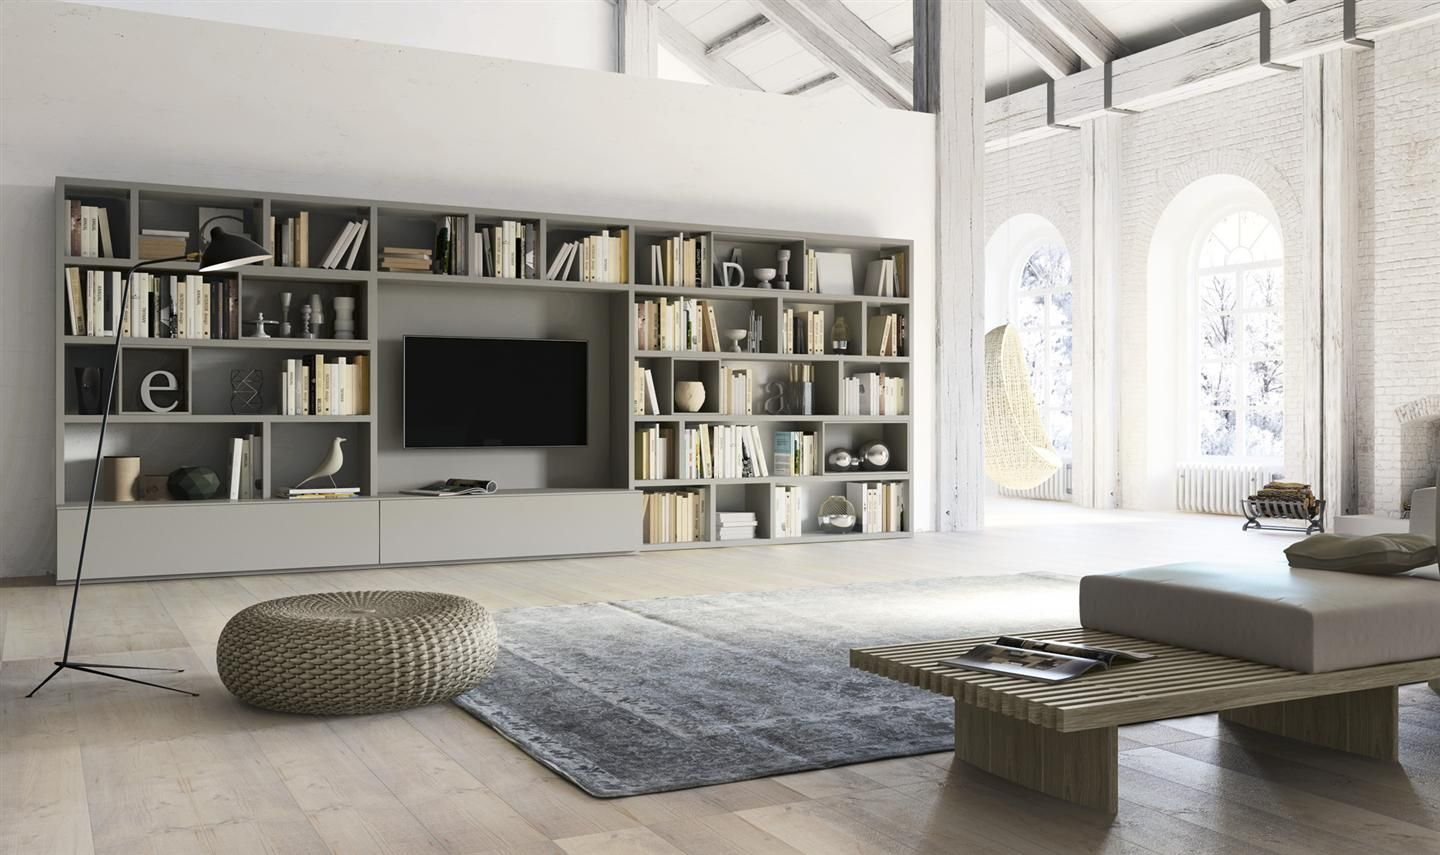 Mobili Alf Da Fre Arredamento Soggiorno E Arredamento Casa Living Room Wall Units Living Room Shelves Modern Living Room Wall